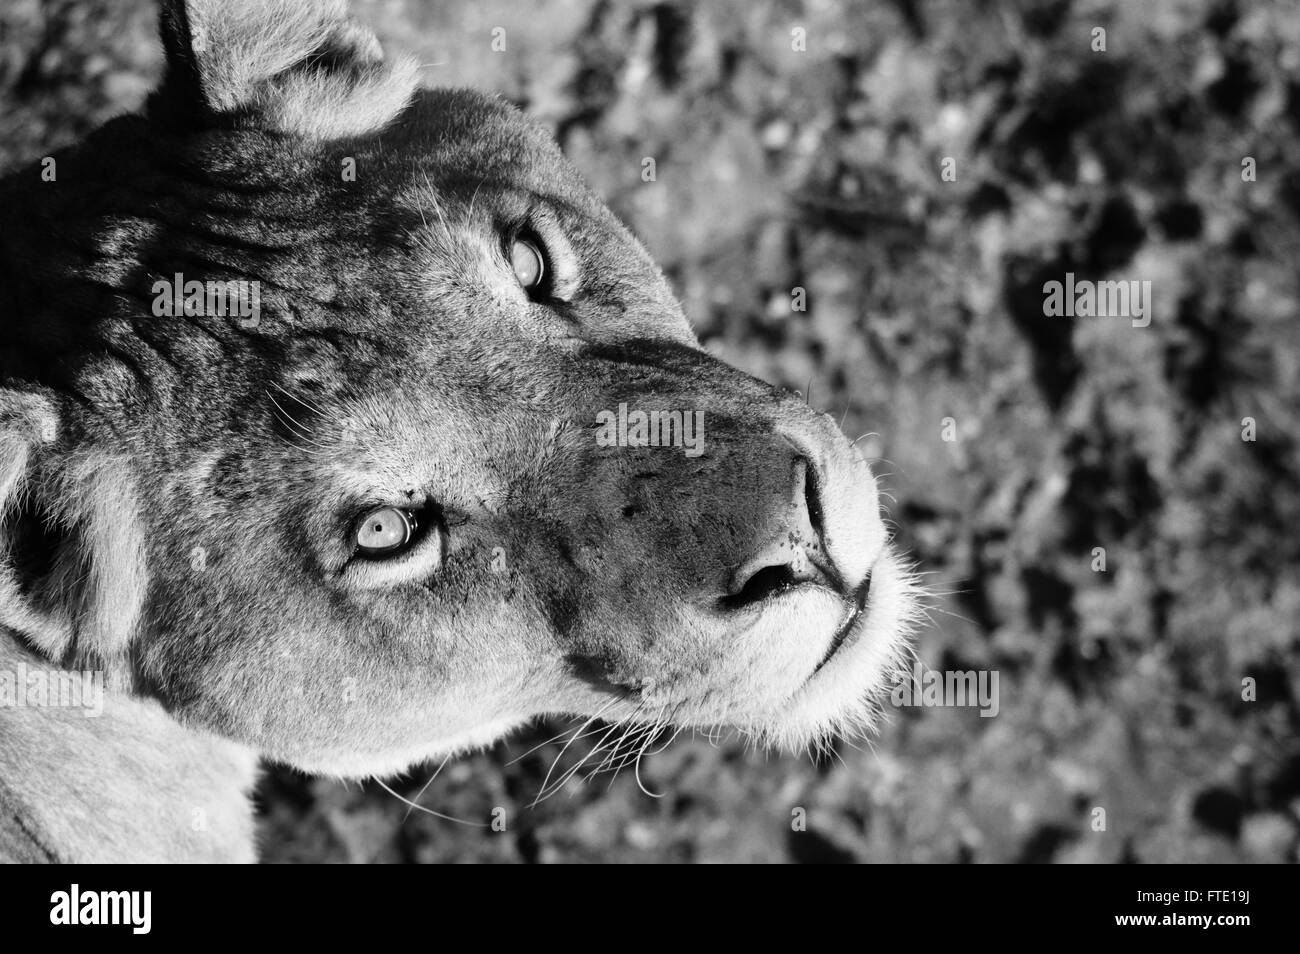 An African Lioness looks up into my camera during a hot and sunny day in July. - Stock Image